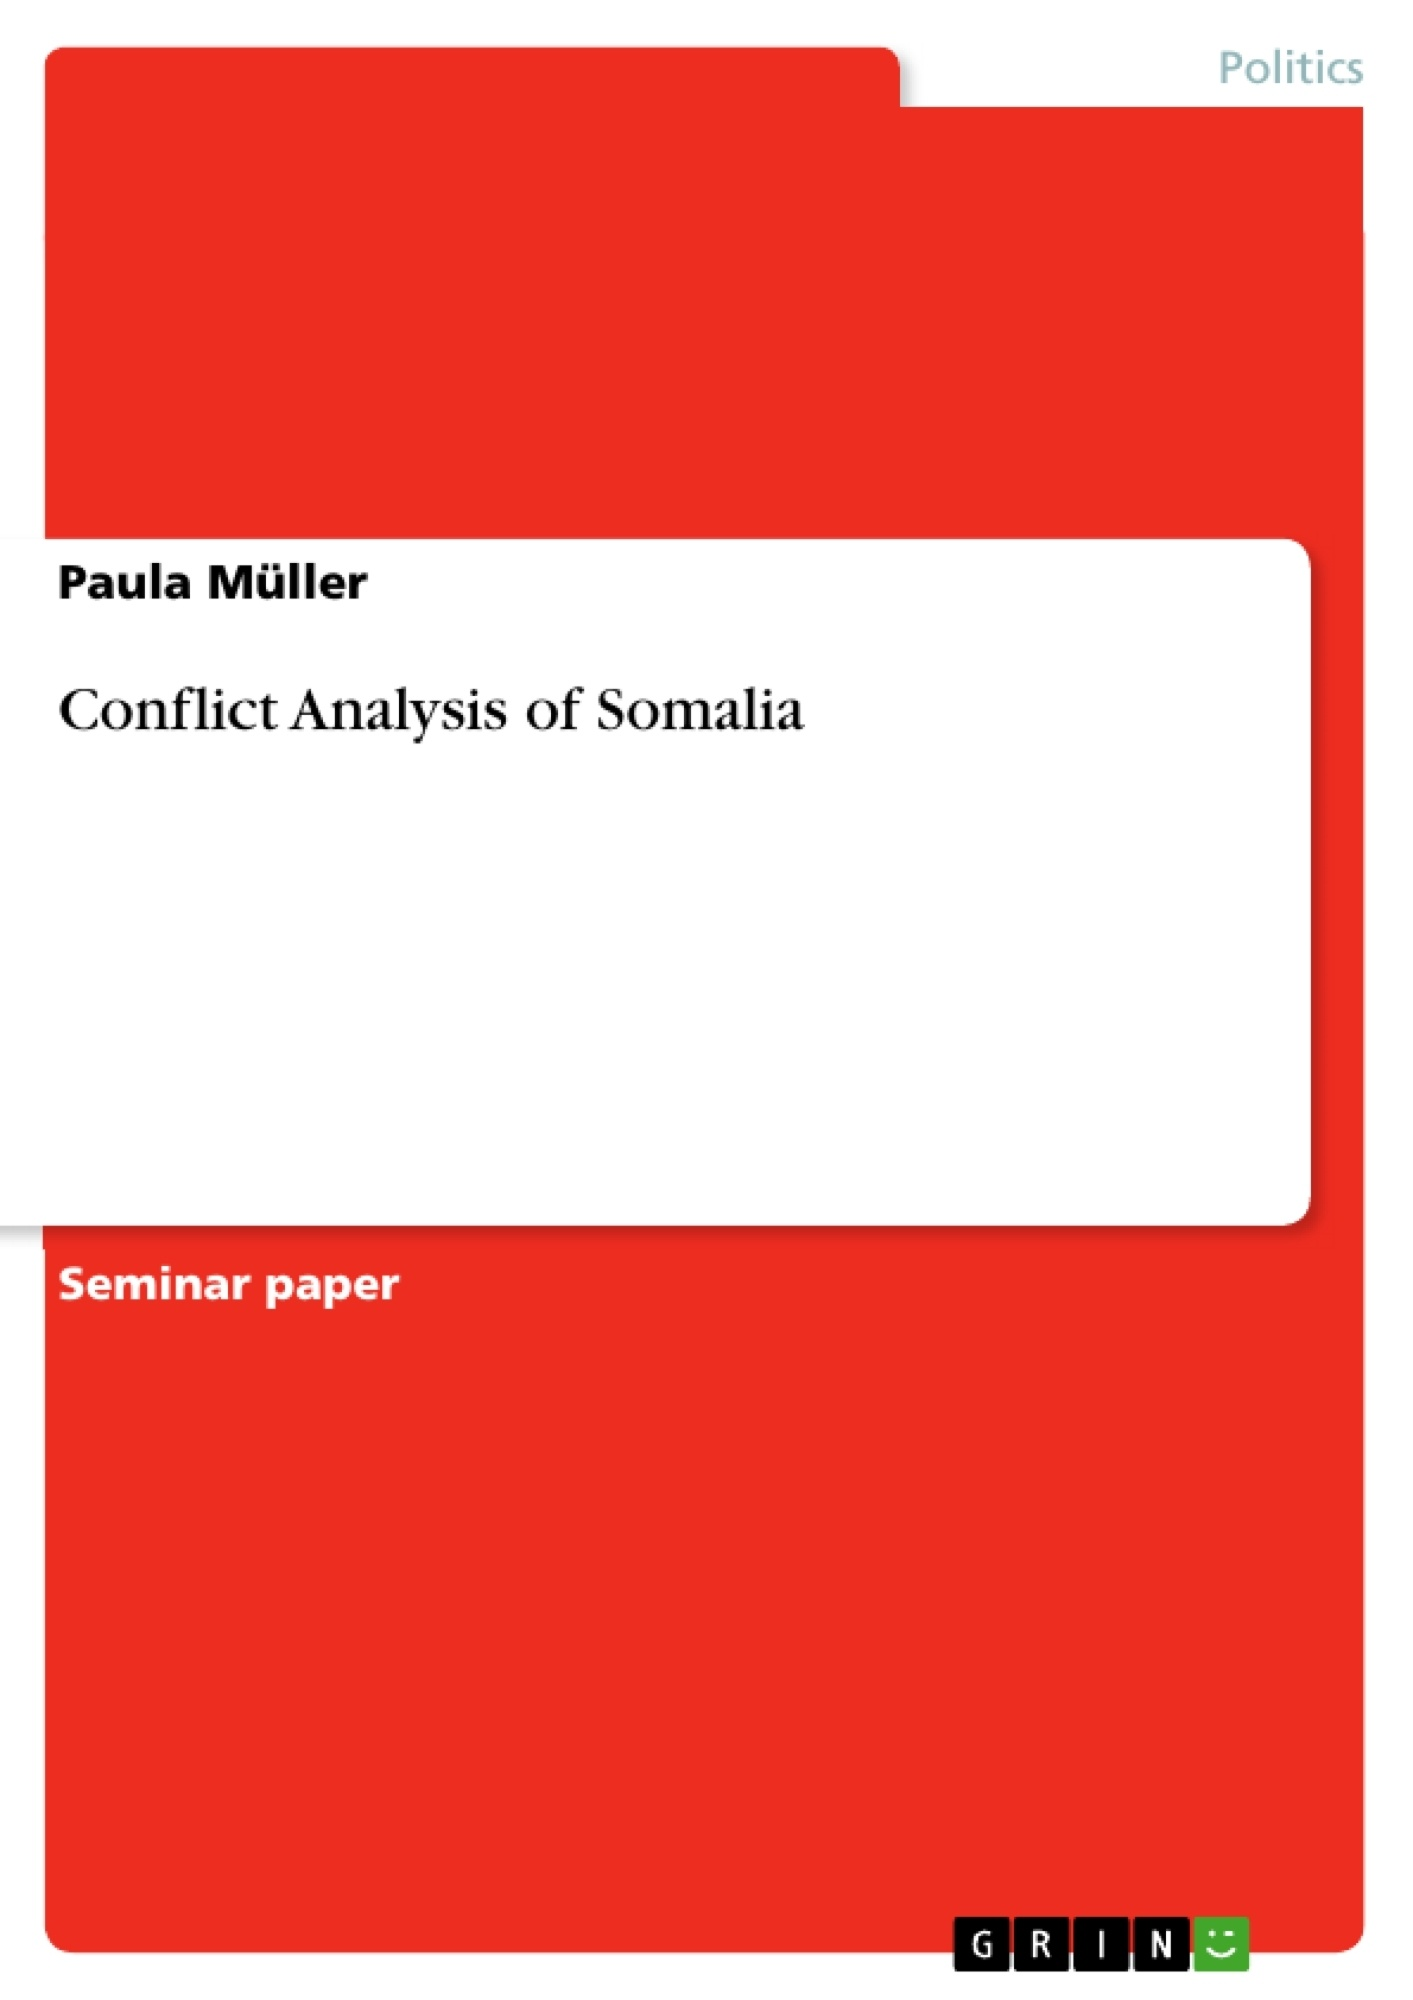 Title: Conflict Analysis of Somalia